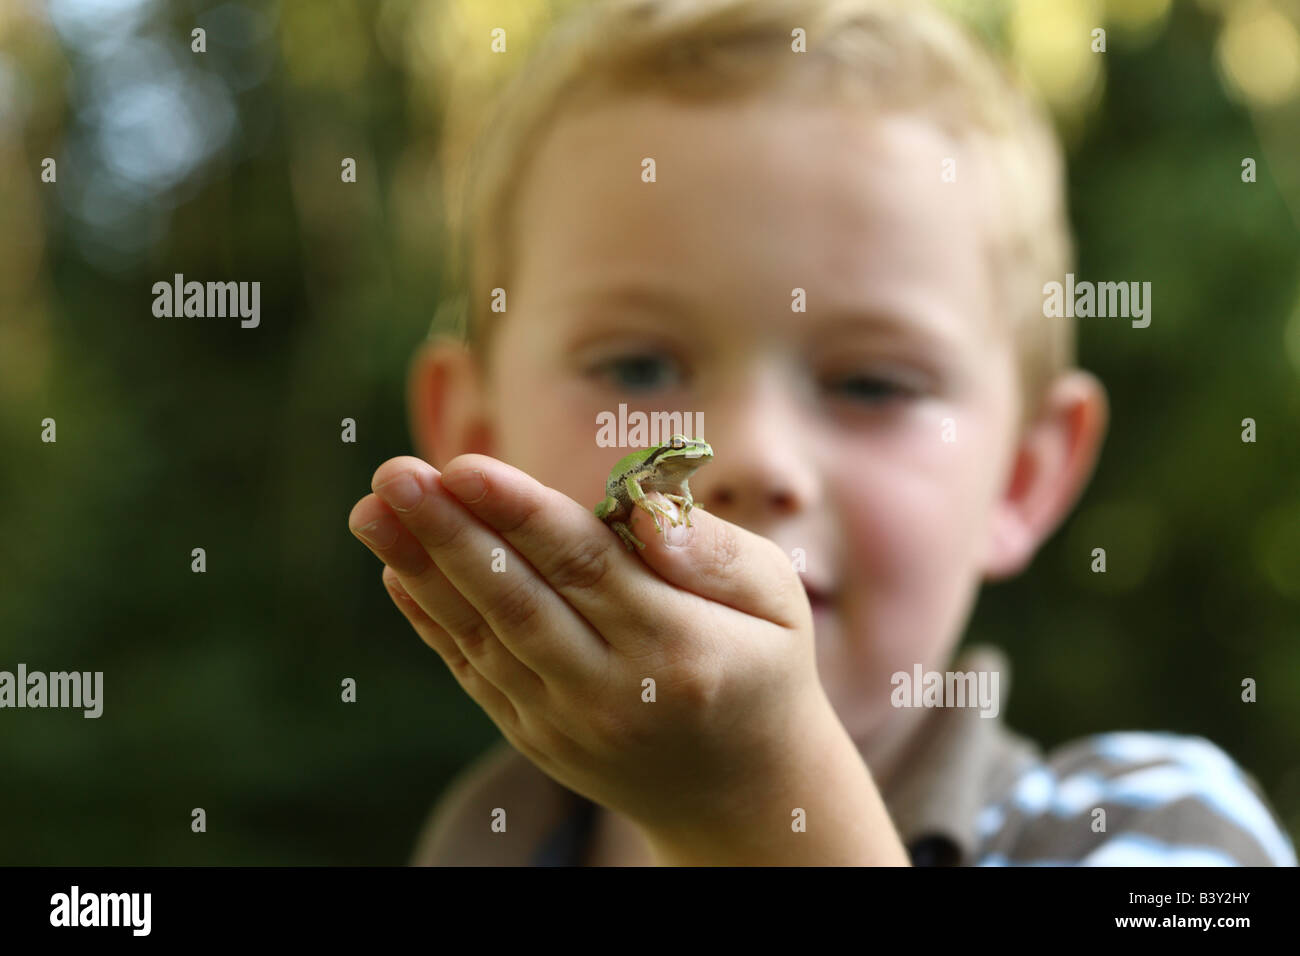 Young boy holding small tree frog Photo Stock